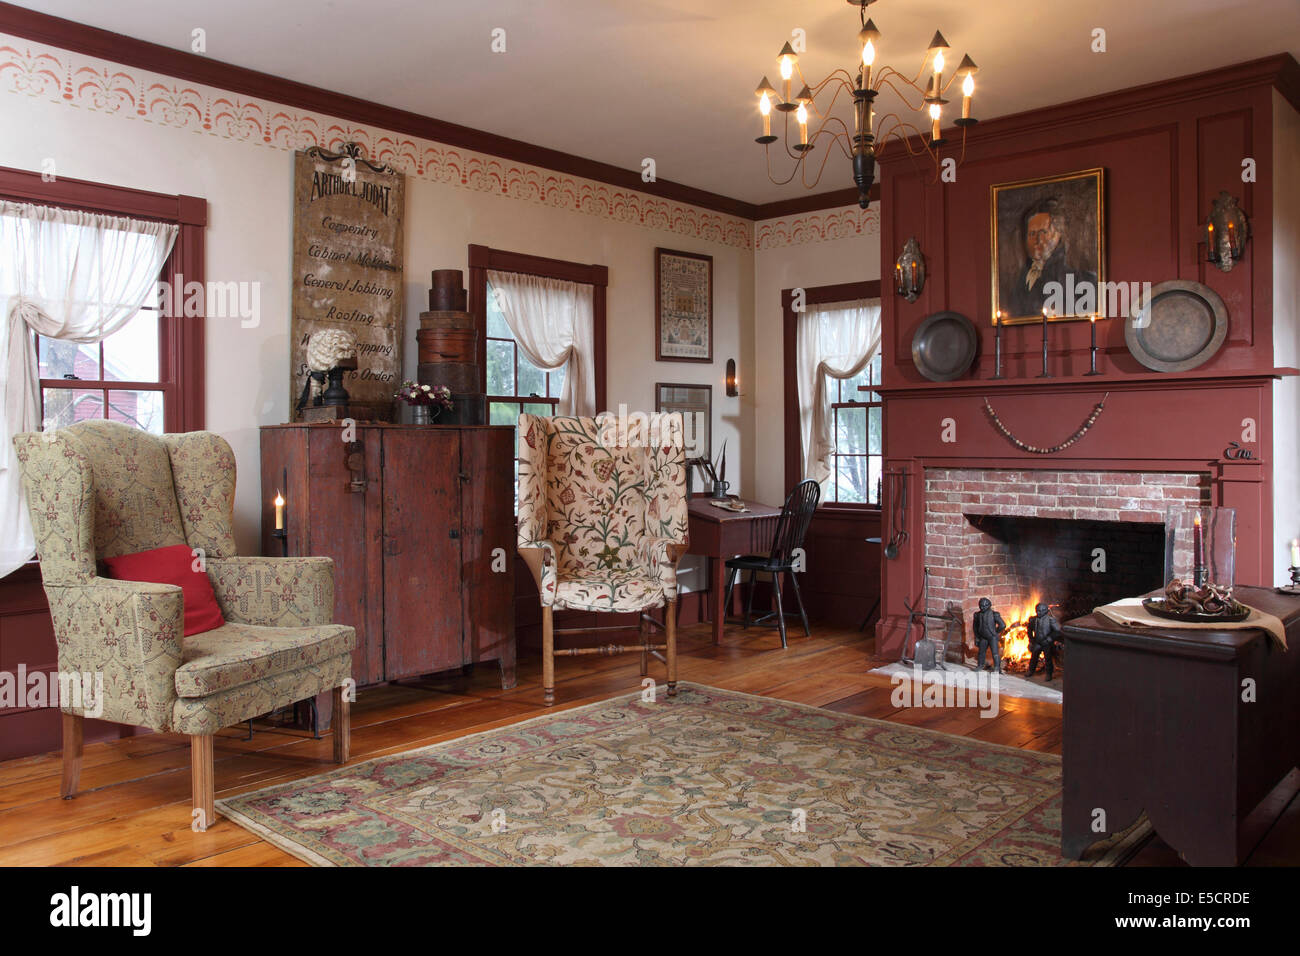 https://c8.alamy.com/comp/E5CRDE/a-formal-living-room-with-fireplace-and-two-wing-chairs-white-walls-E5CRDE.jpg